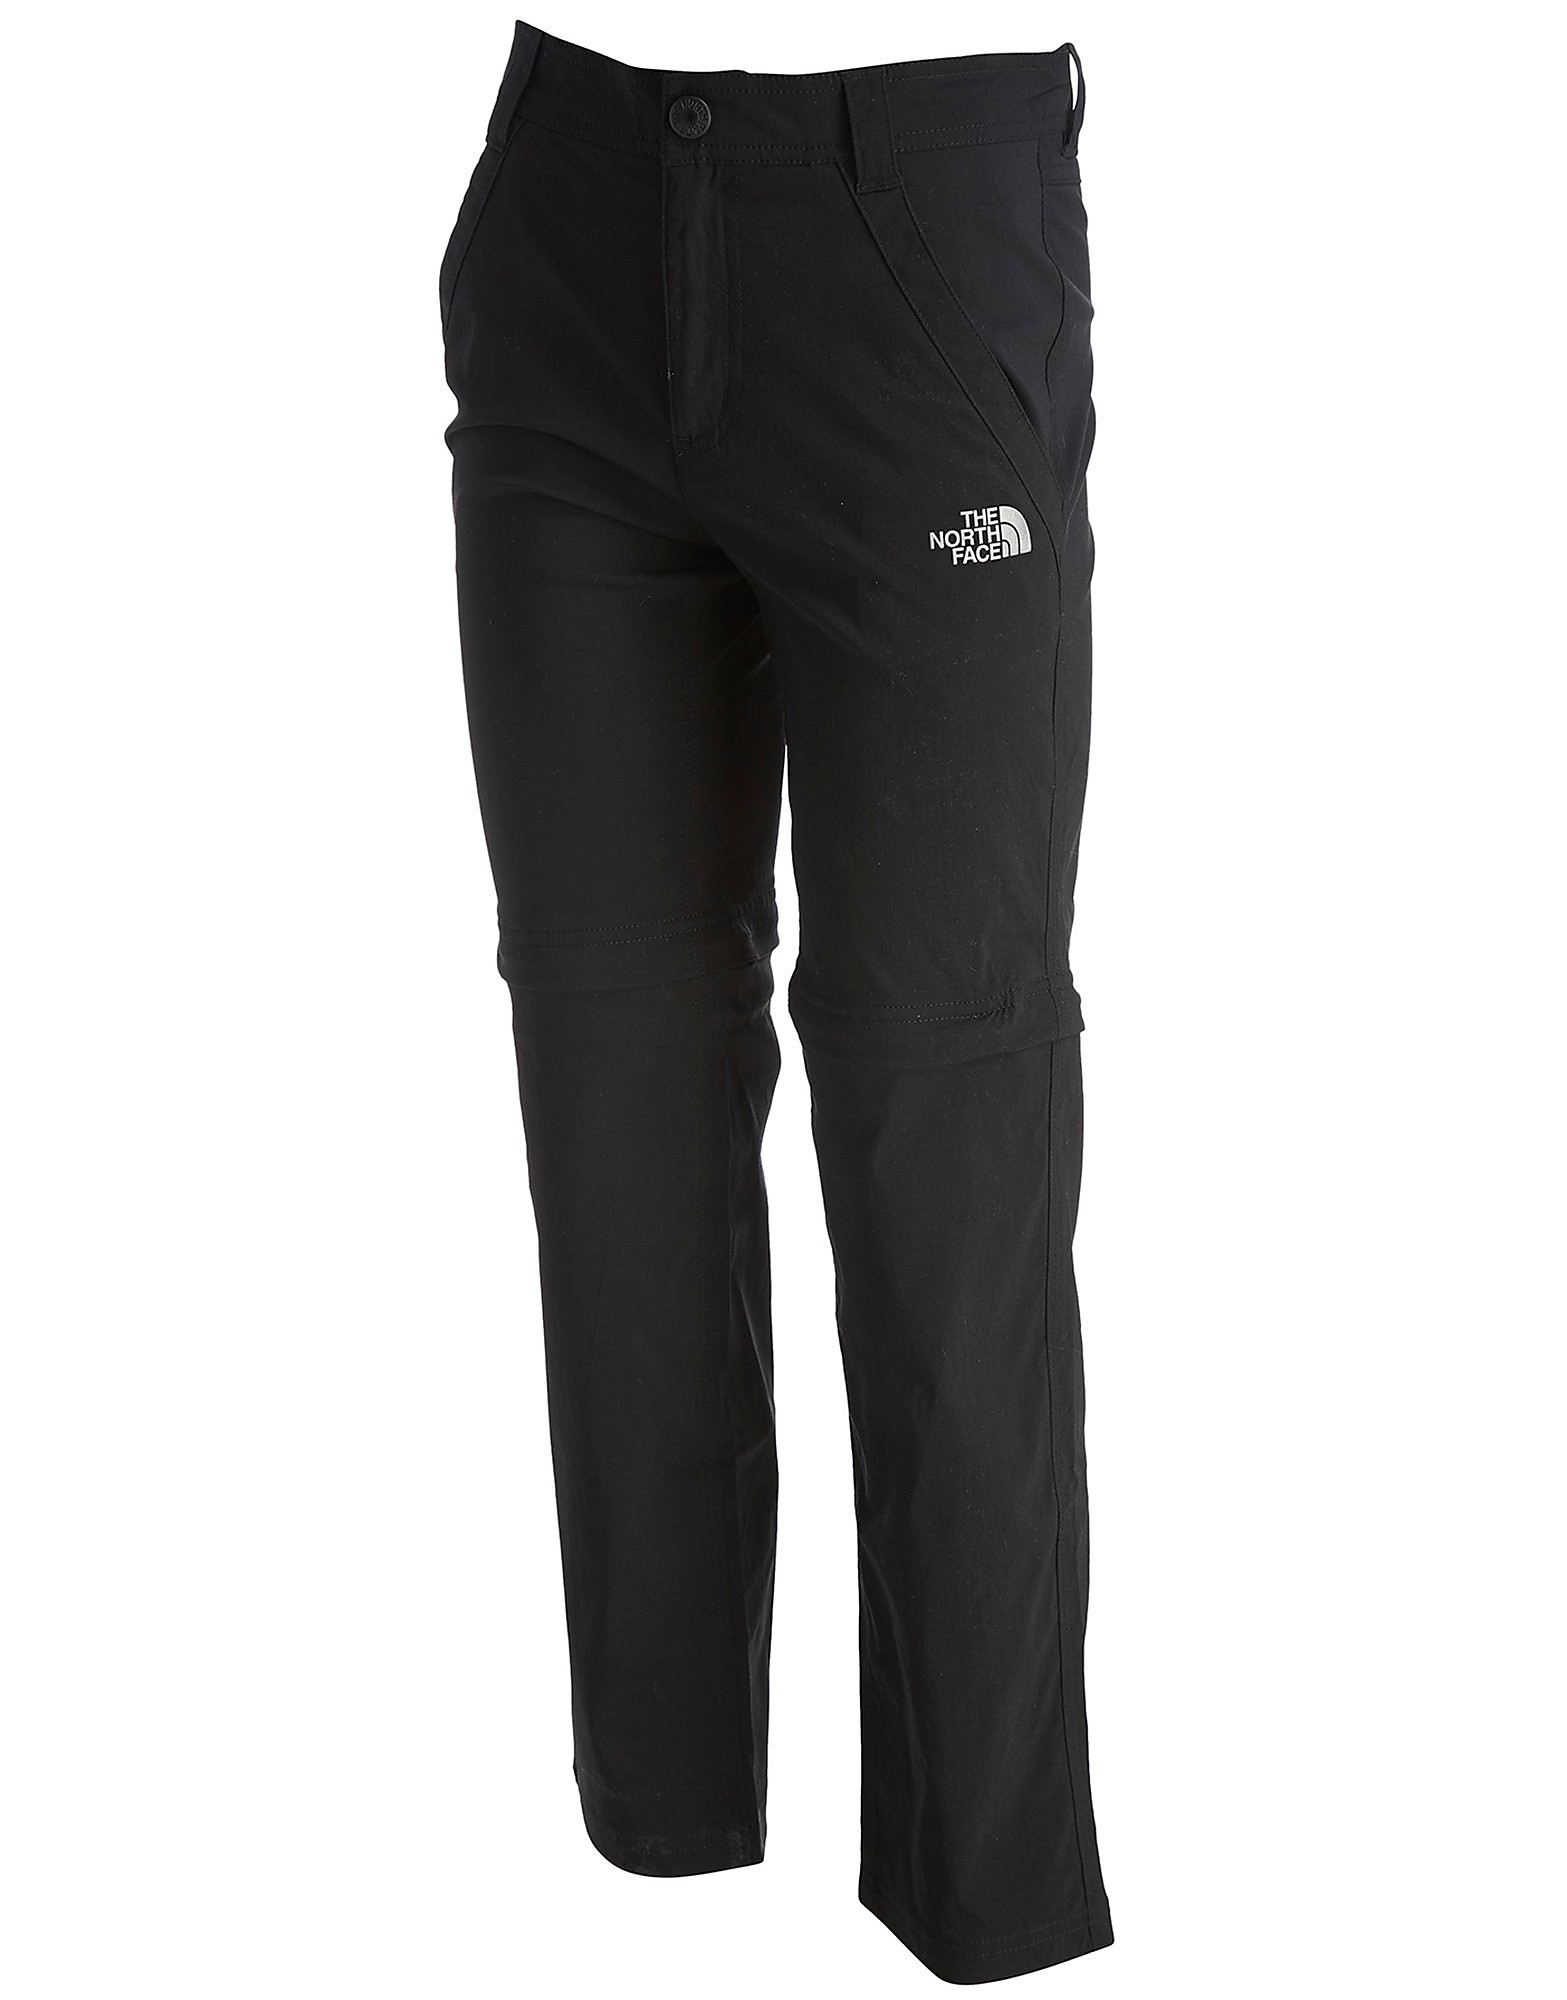 The North Face Convertible Pants Junior